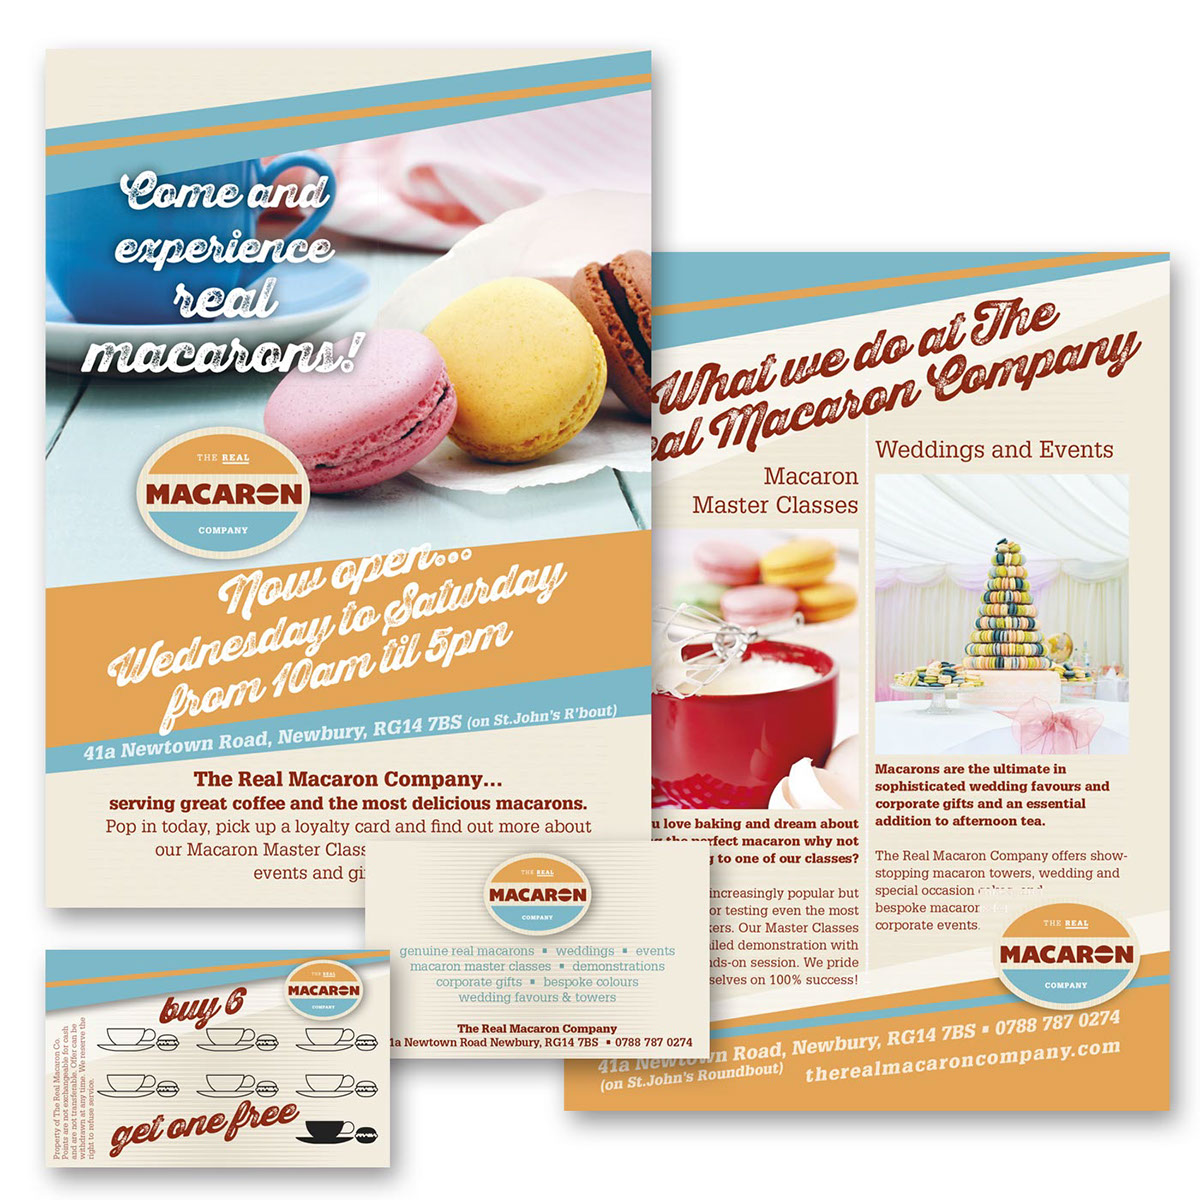 Leaflet & Loyalty Card for The Real Macaron Co  on Behance